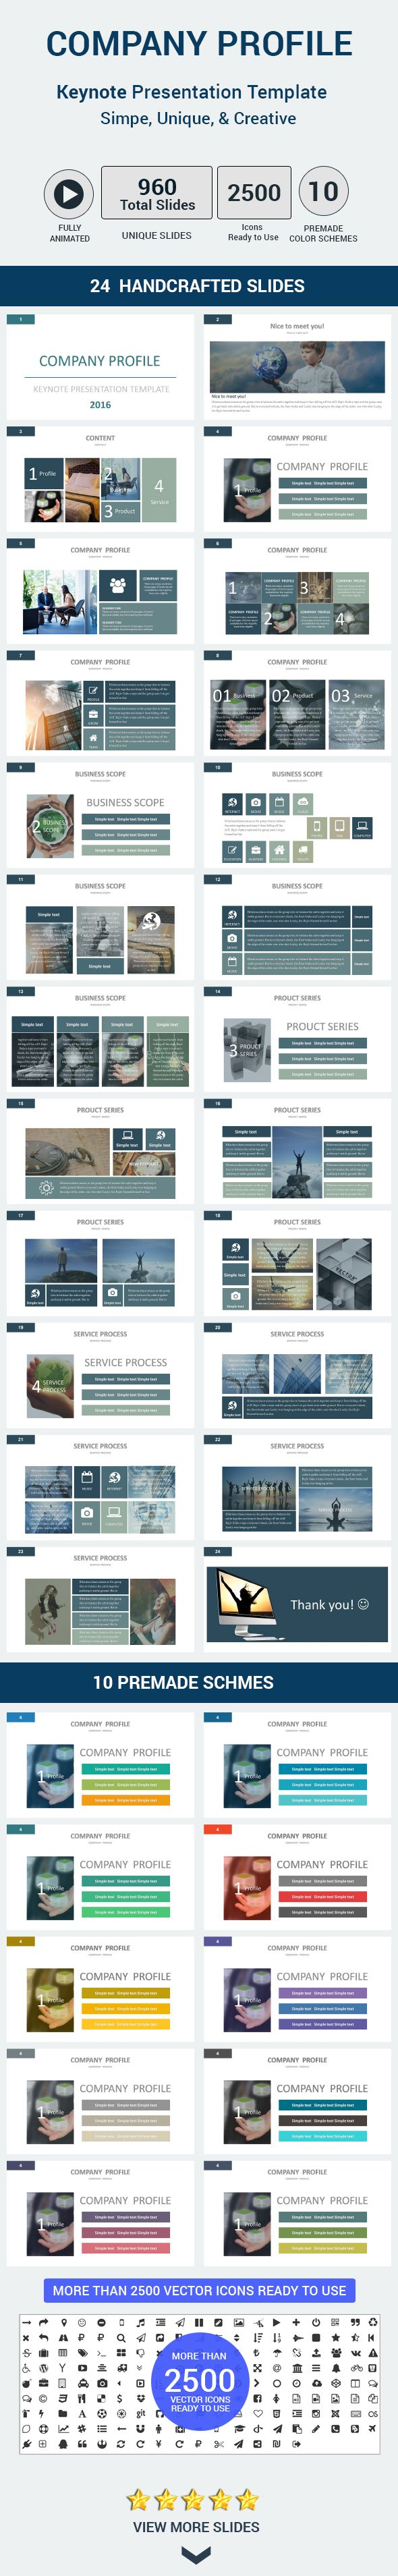 COMPANY PROFILE Keynote Presentation Template. Download here: http://graphicriver.net/item/company-profile-keynote-presentation-template-/16561928?ref=ksioks                                                                                                                                                                                 More